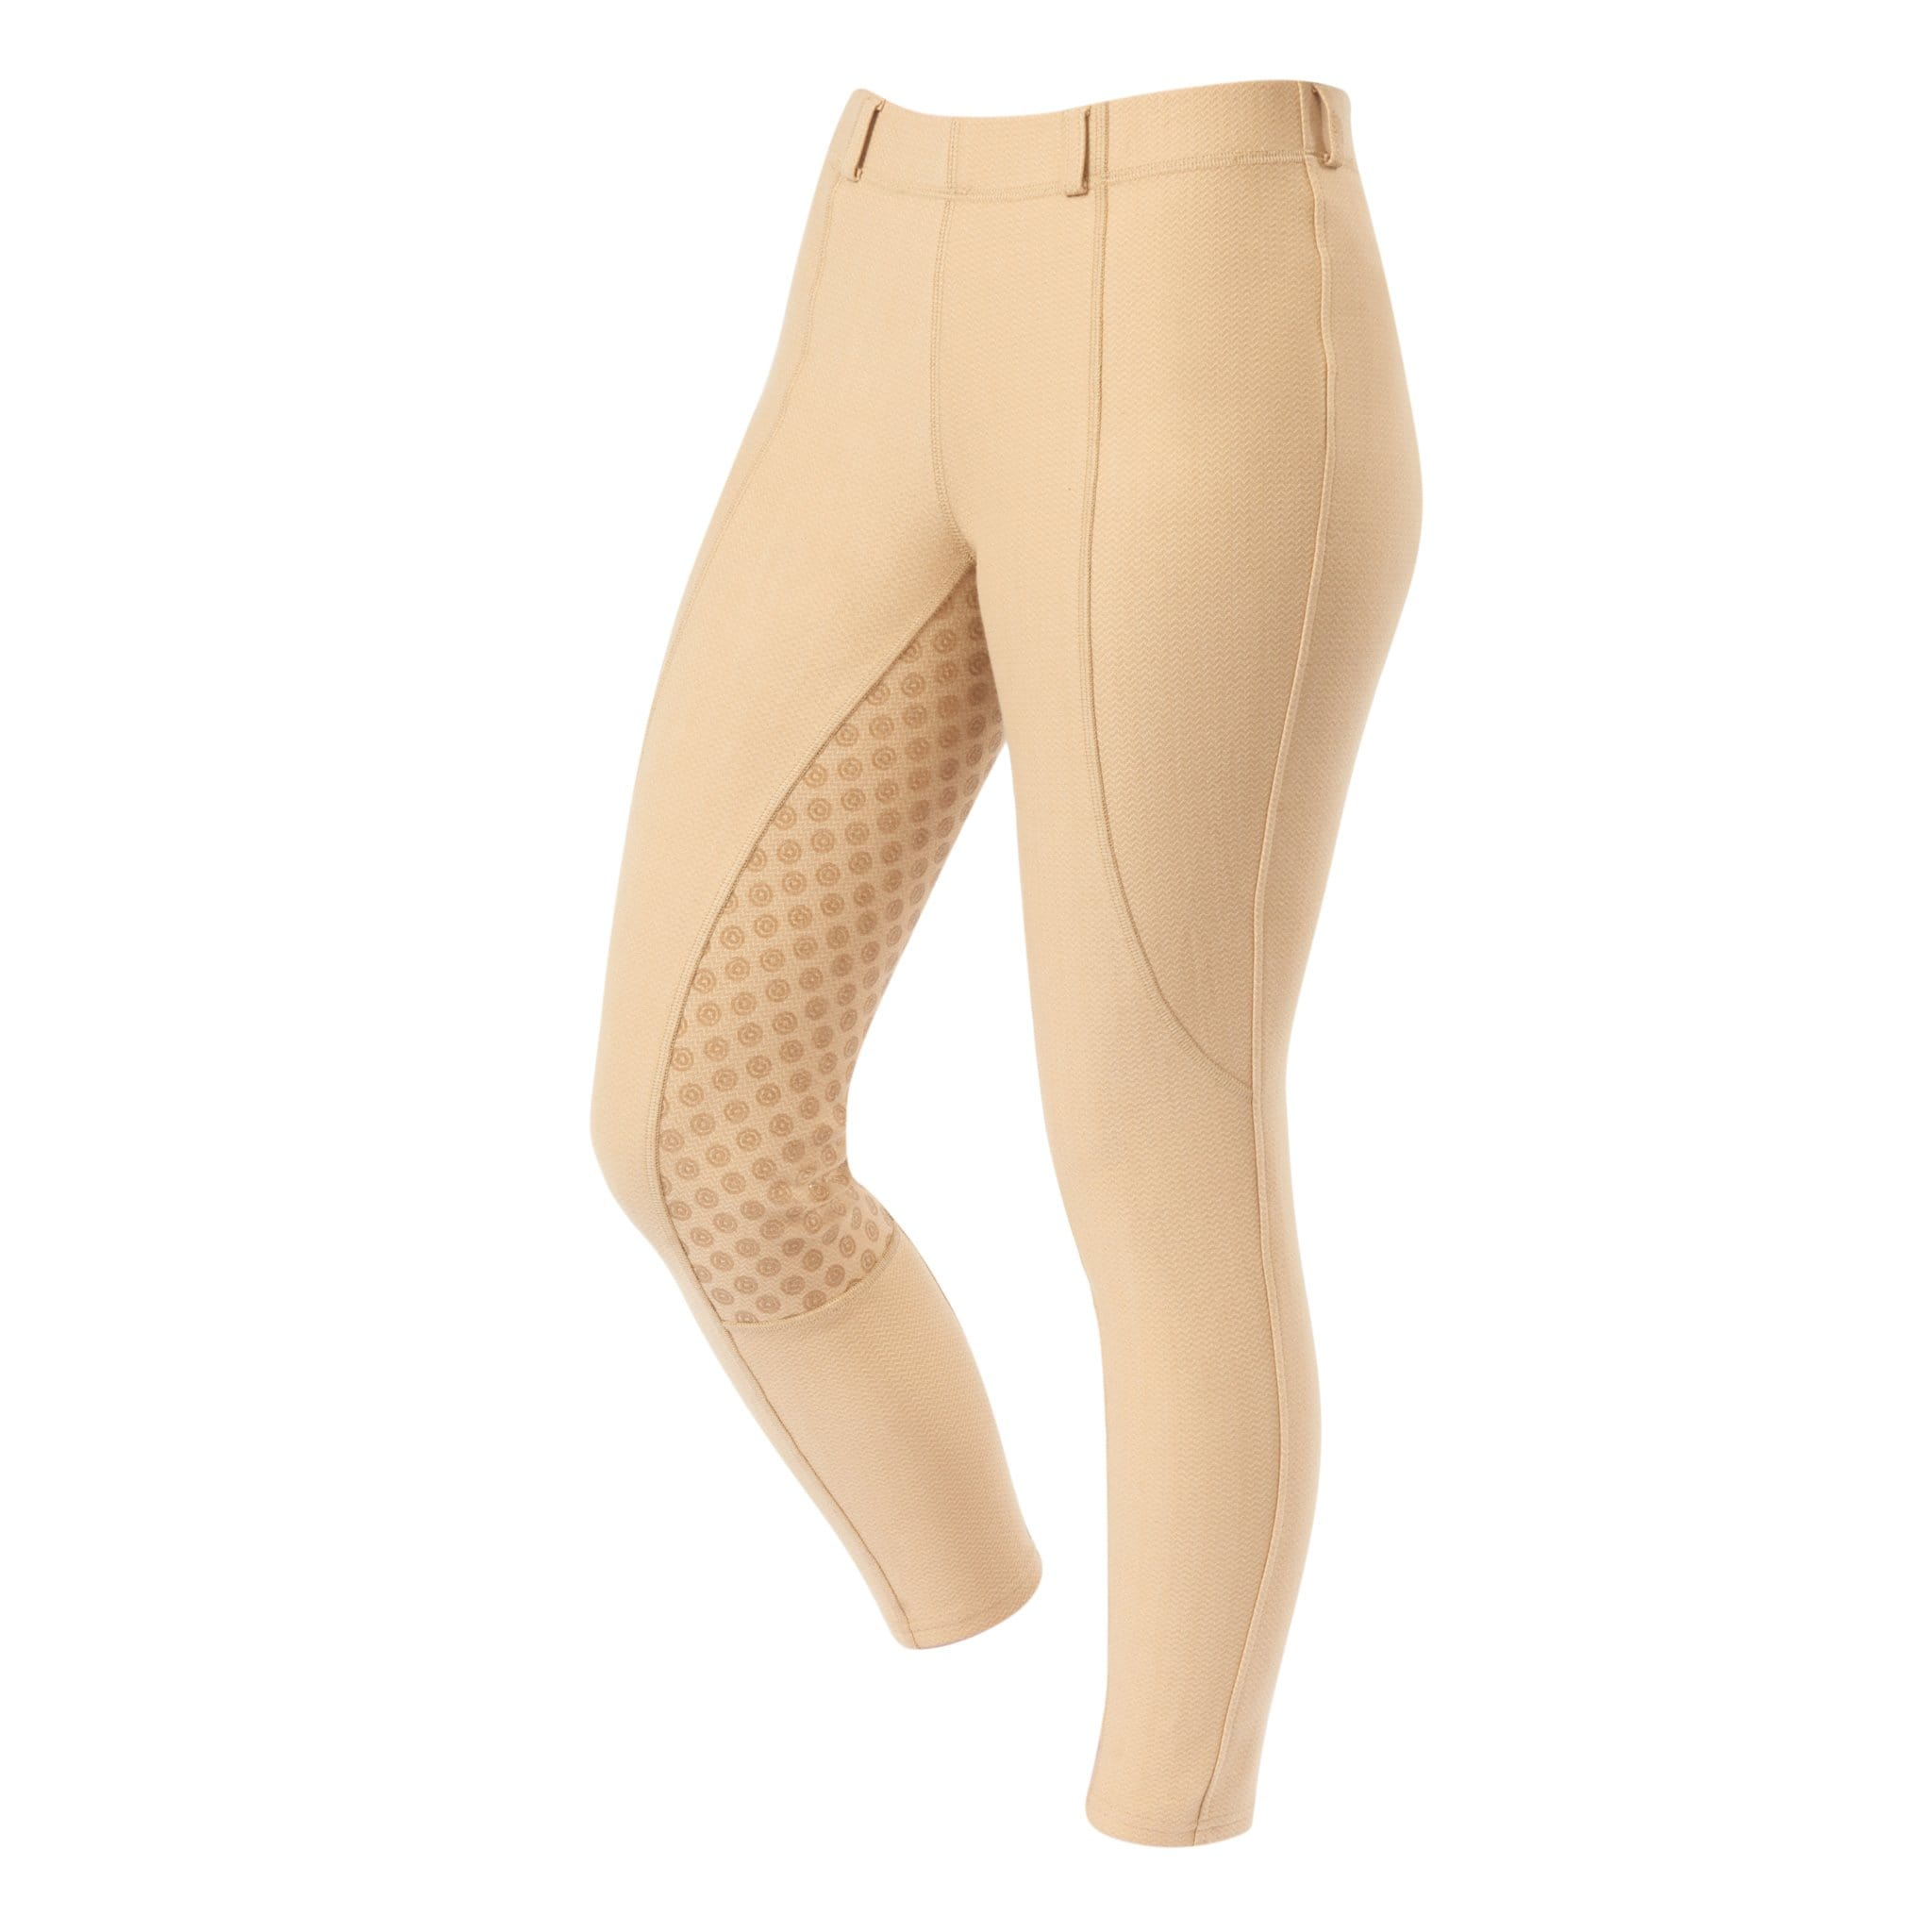 Dublin Performance Warm-It Gel Silicone Full Seat Riding Tights Beige Front